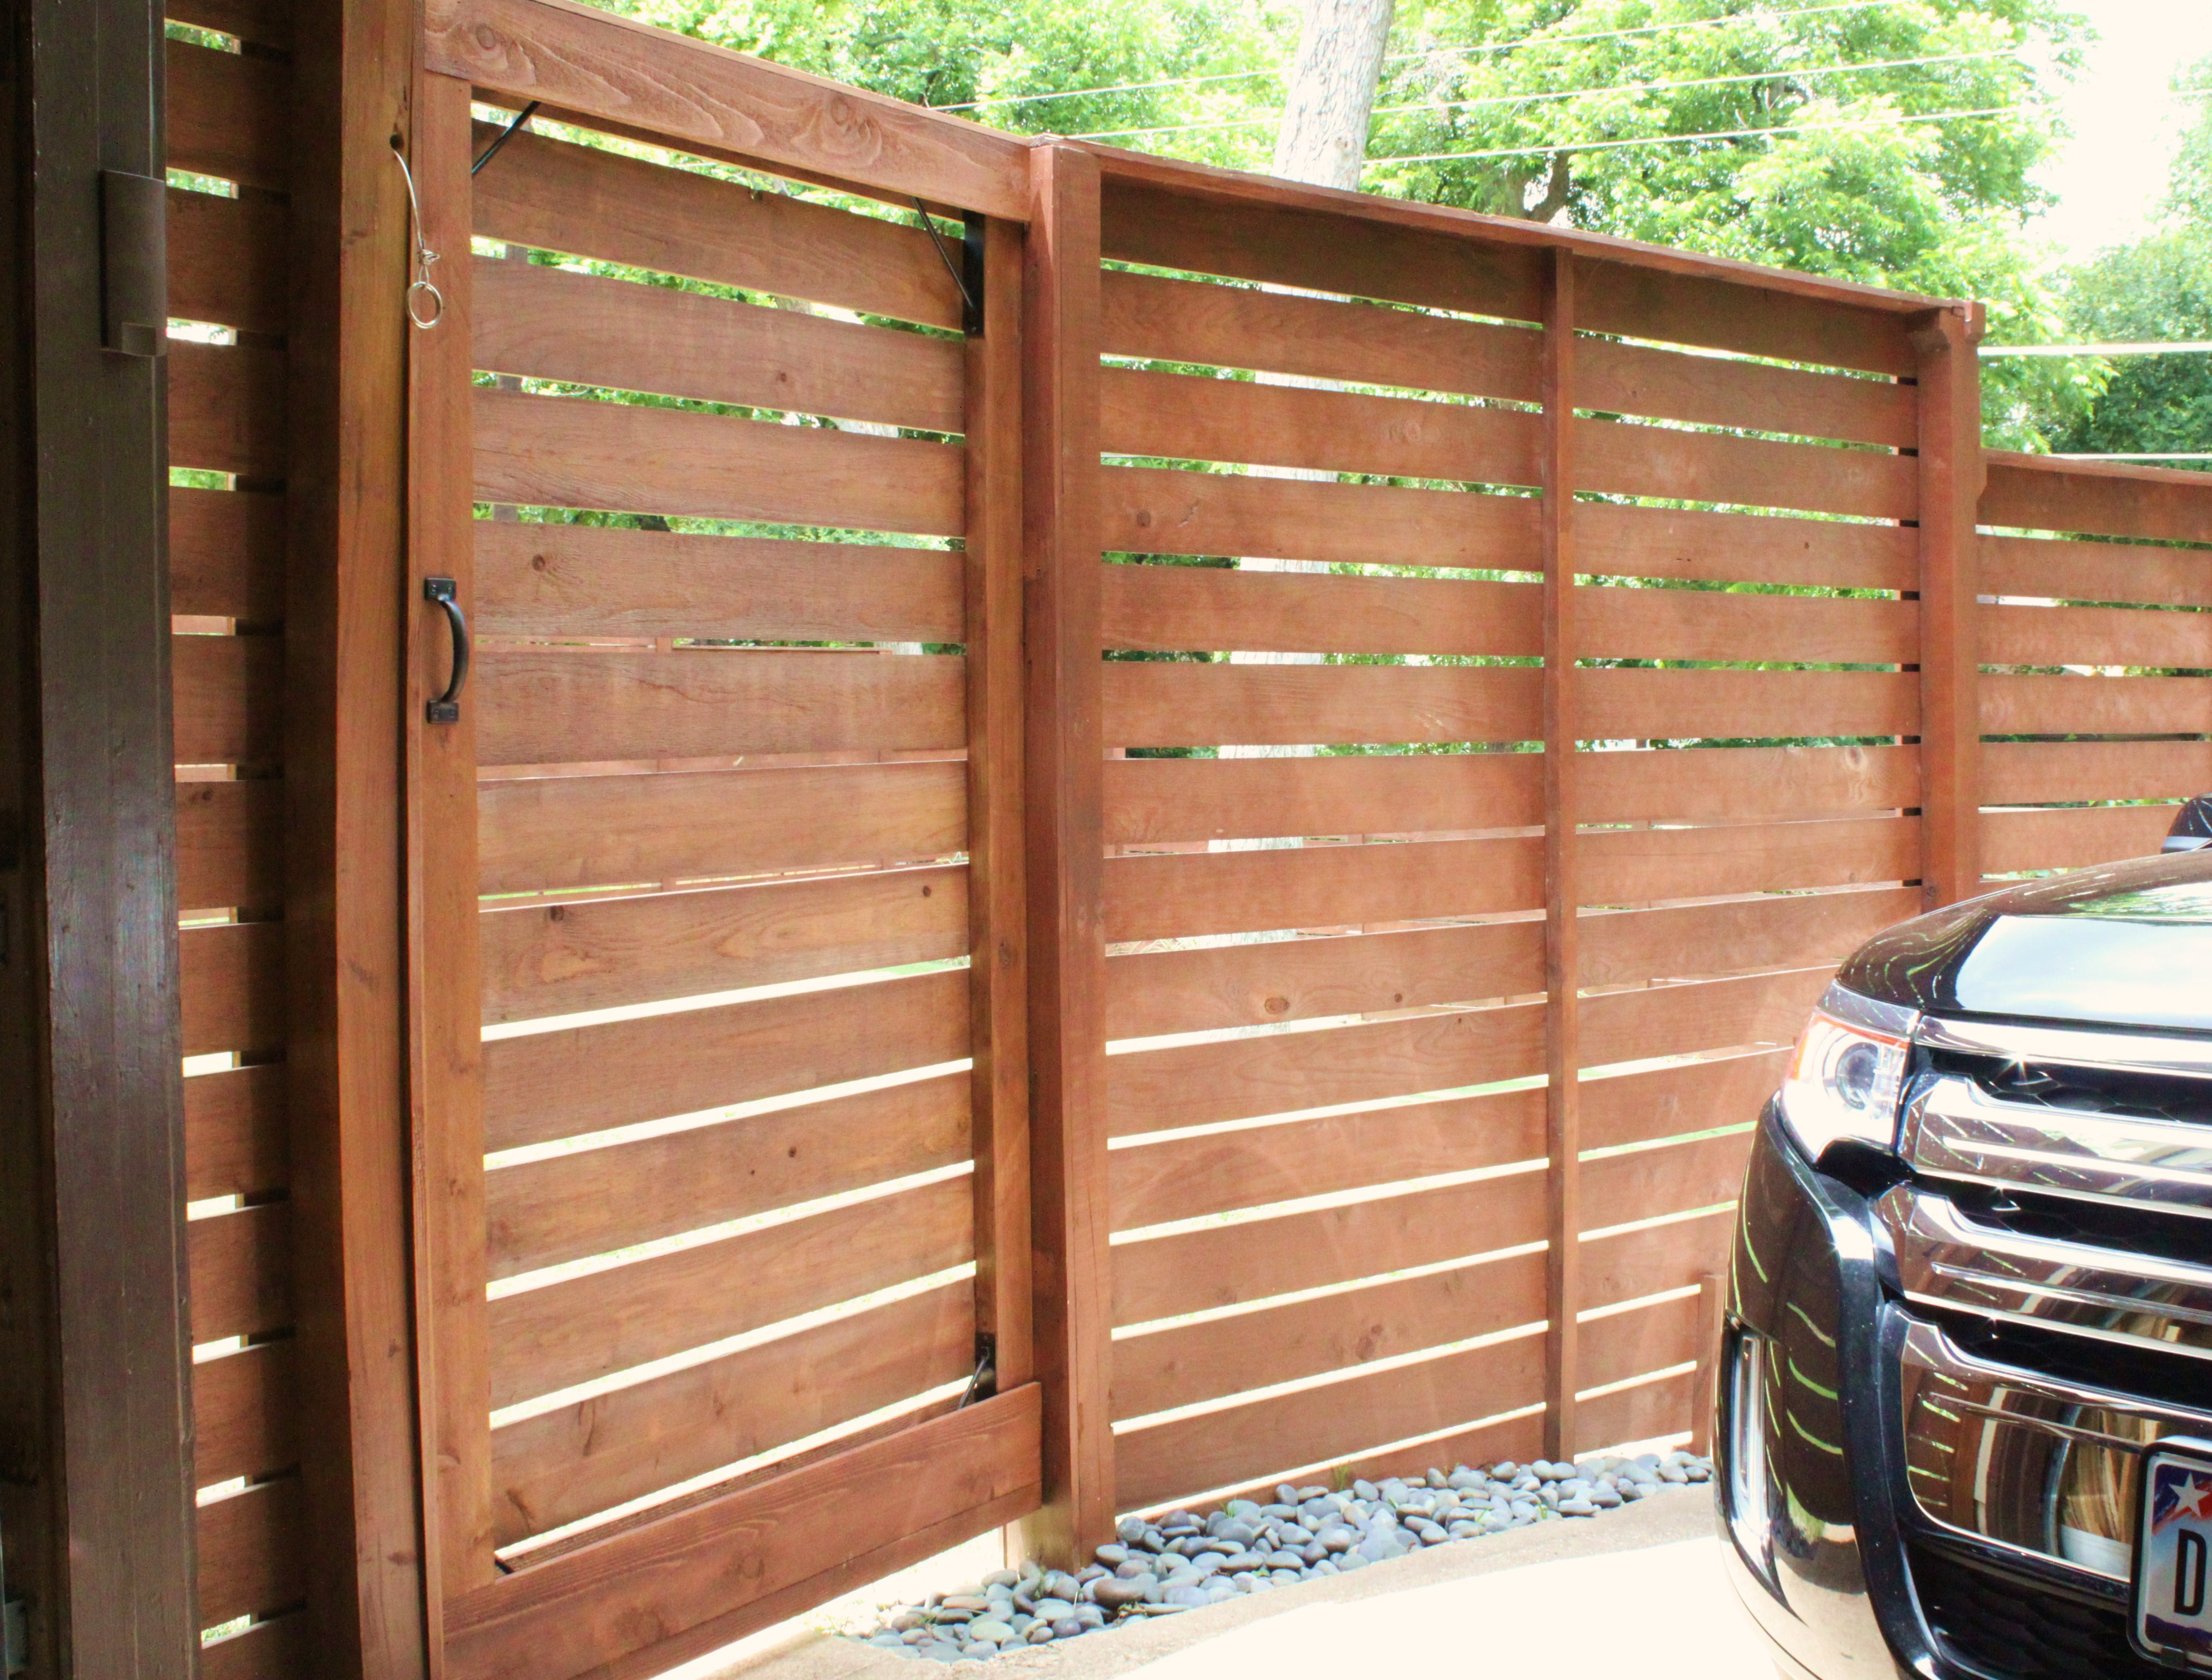 Wood Fence Door Design wood fence gate design ideas New Horizontal Gate From The Back Side